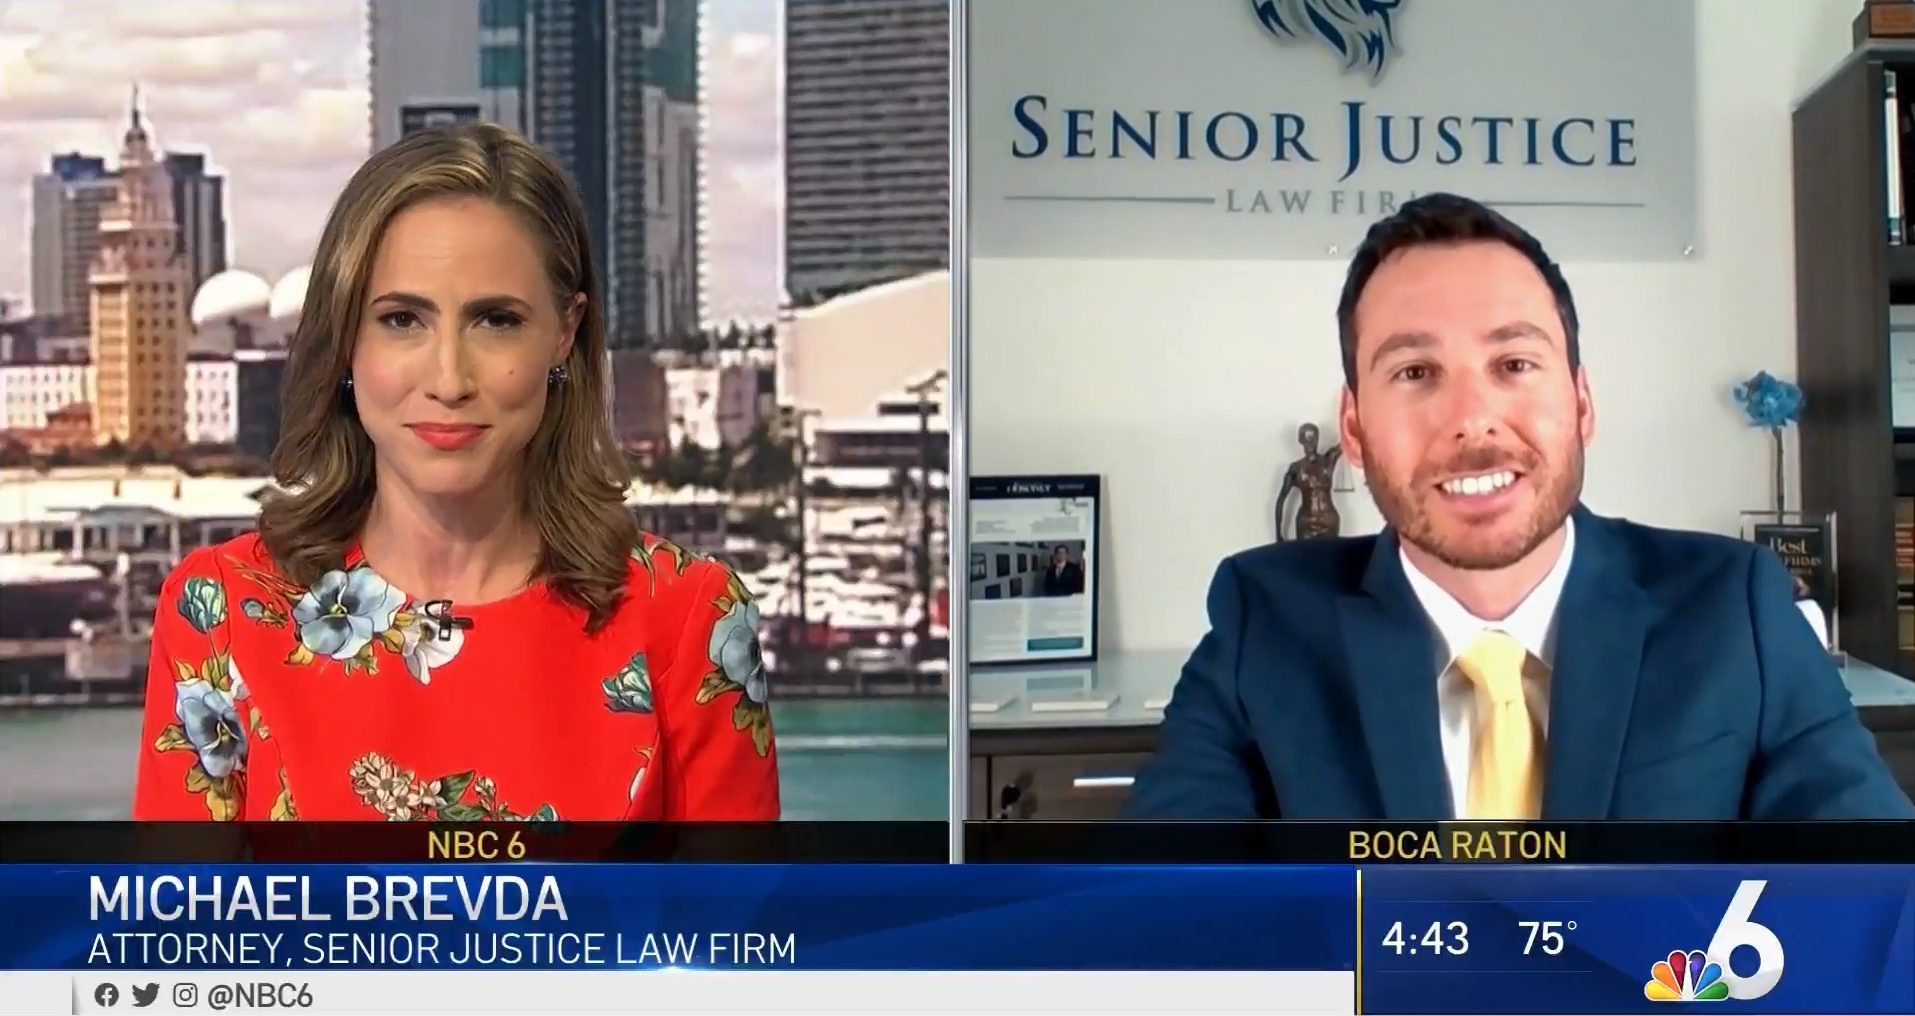 Attorney Michael Brevda on NBC